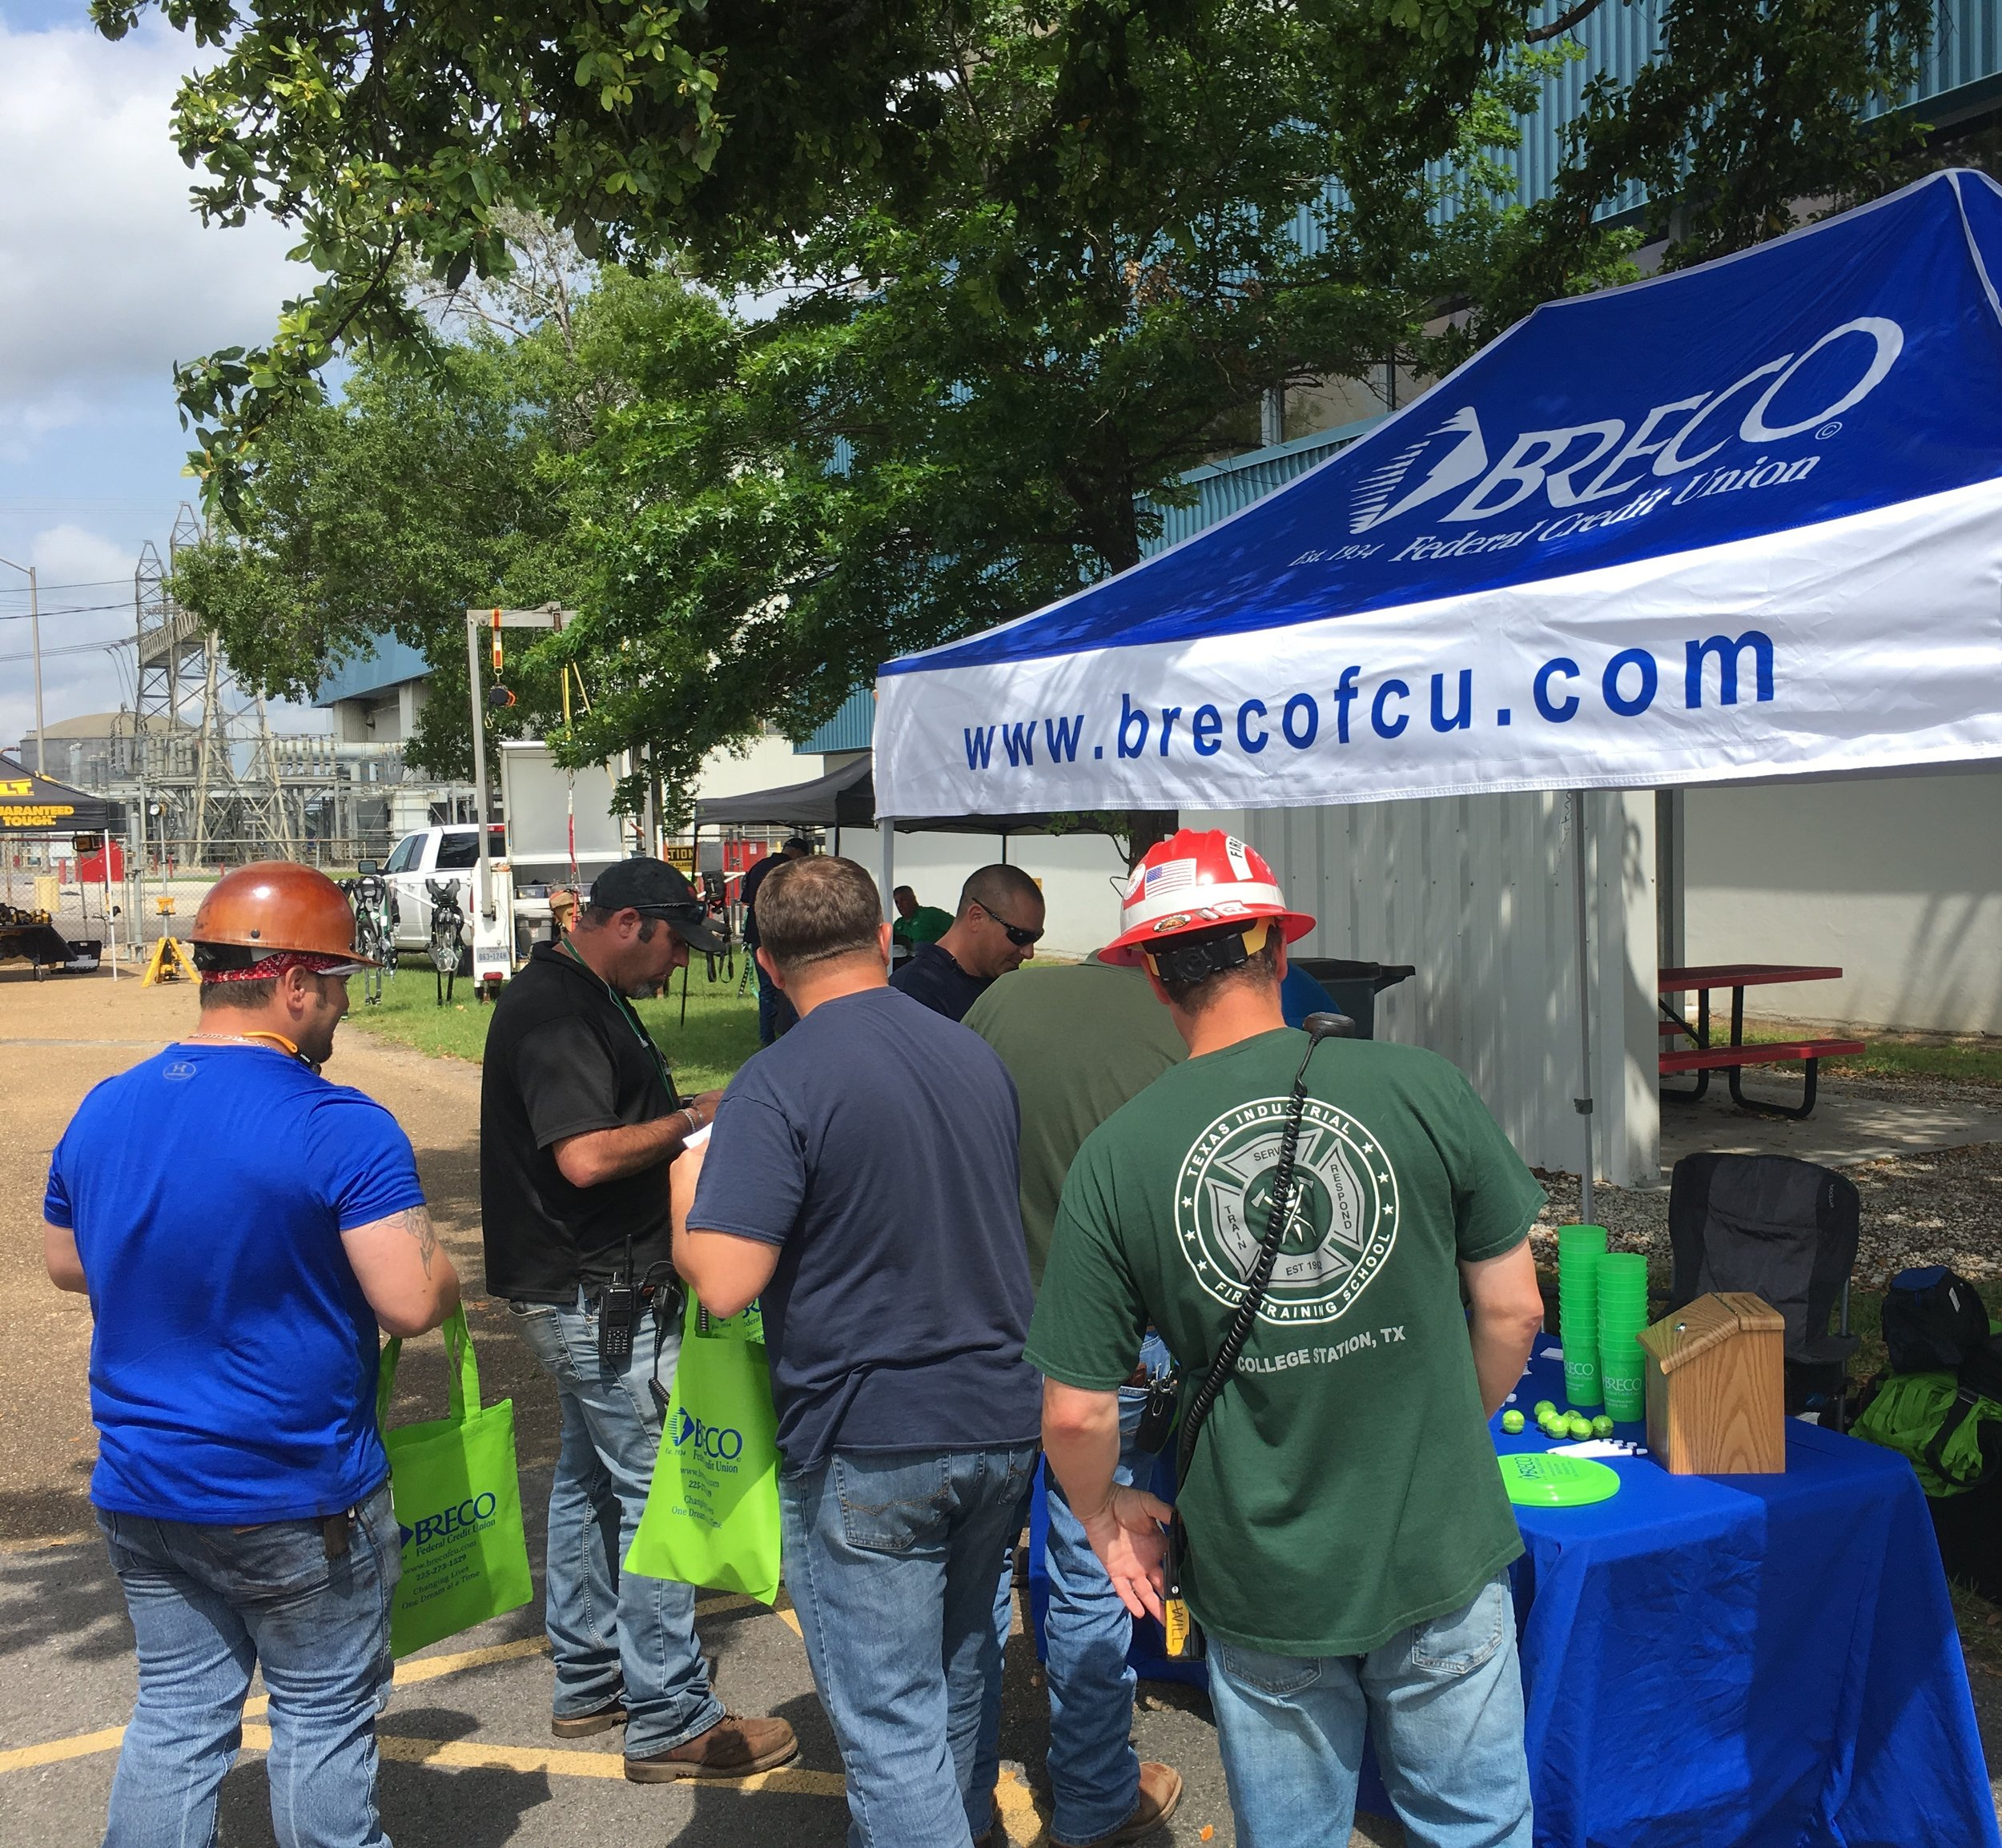 Entergy employees visit BRECO's booth at the Entergy Safety Fair in Westlake, LA.